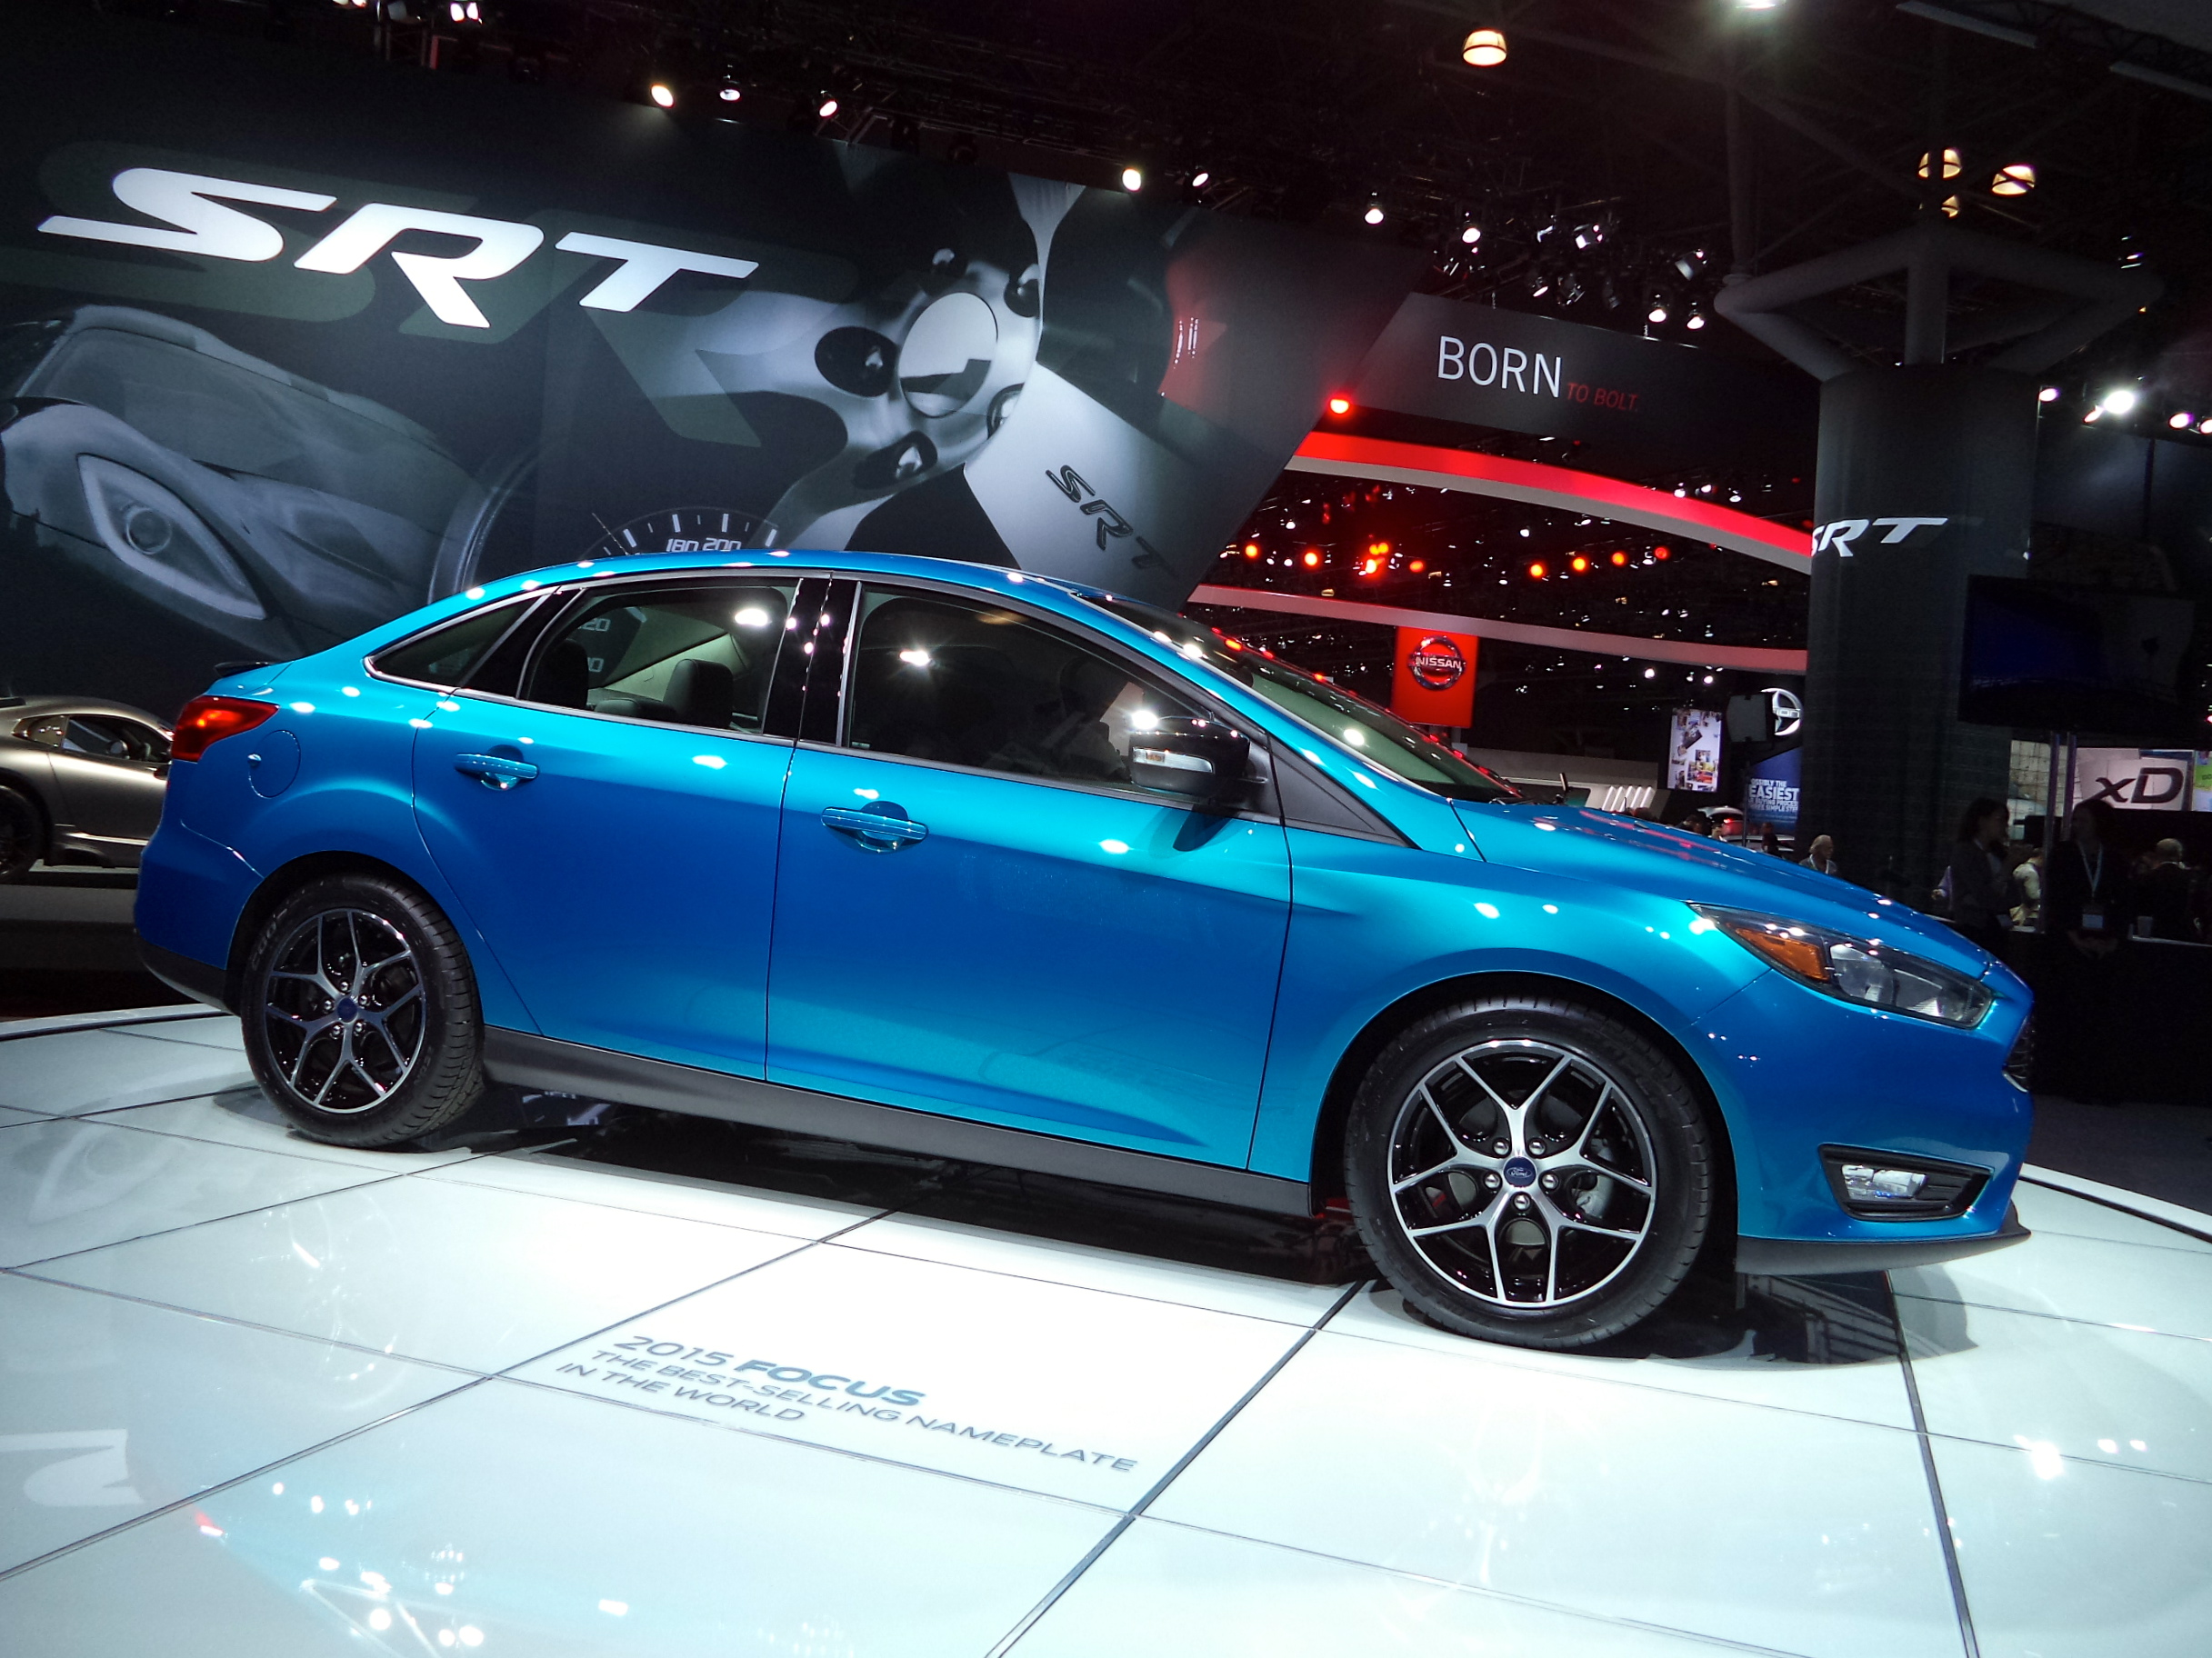 2015 ford focus sedan - 04 21 14 2015 Auto Shows Ford New York News No Comments